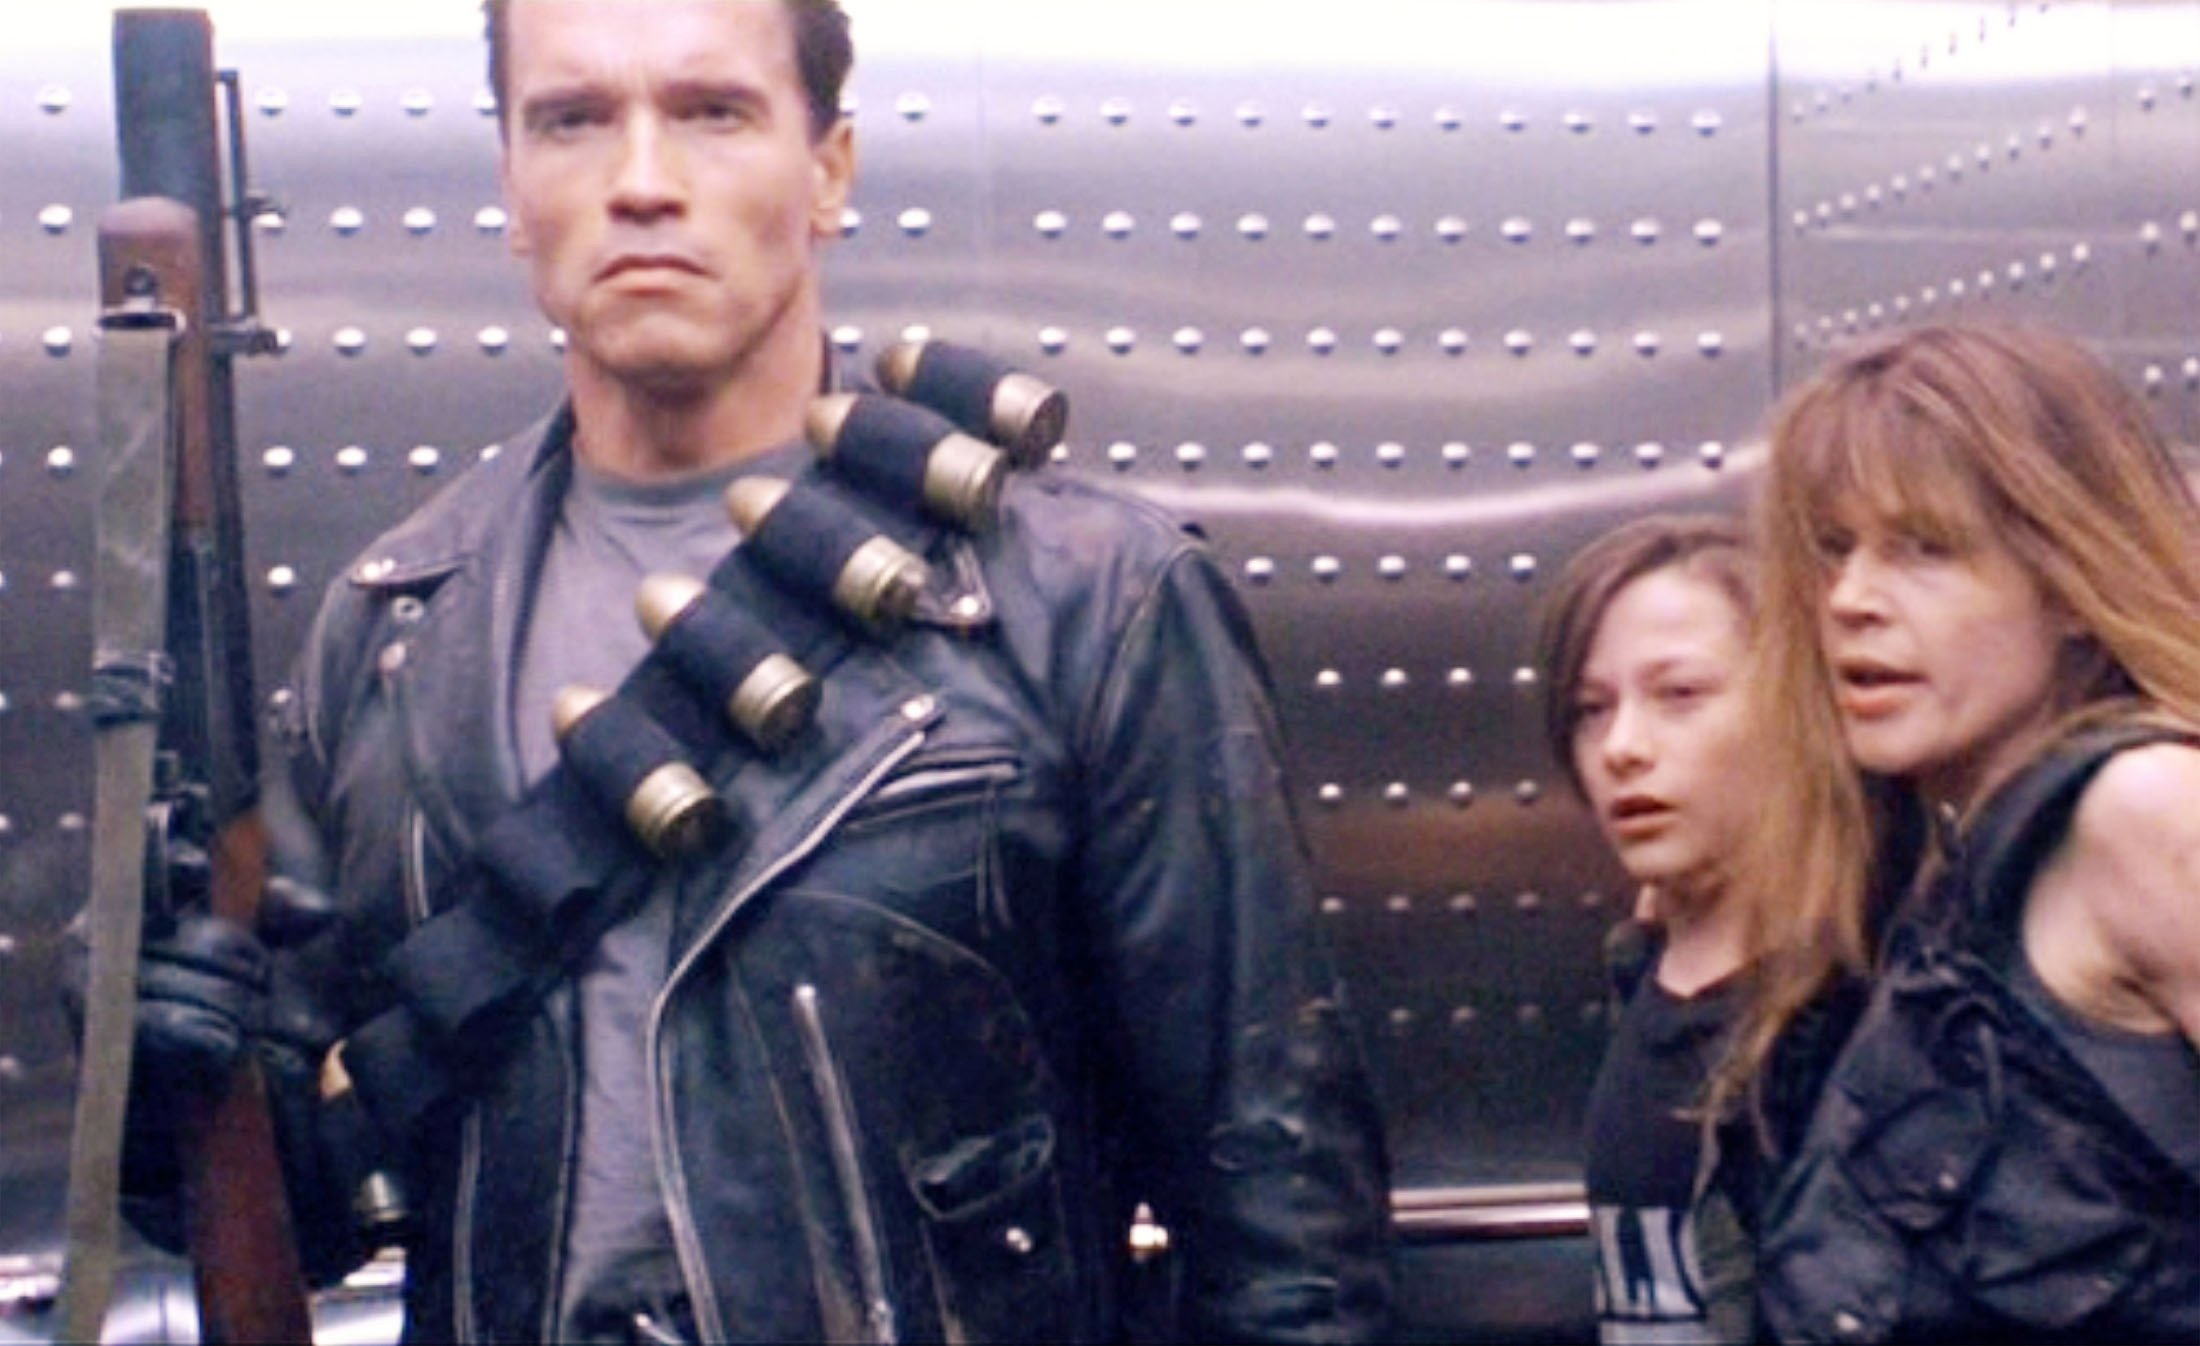 Arnold Schwarzenegger (L),Edward Furlong (C) and Linda Hamilton take the elevator in a scene from the movie'Terminator 2: Judgment Day', released in 1991. (Getty Images)